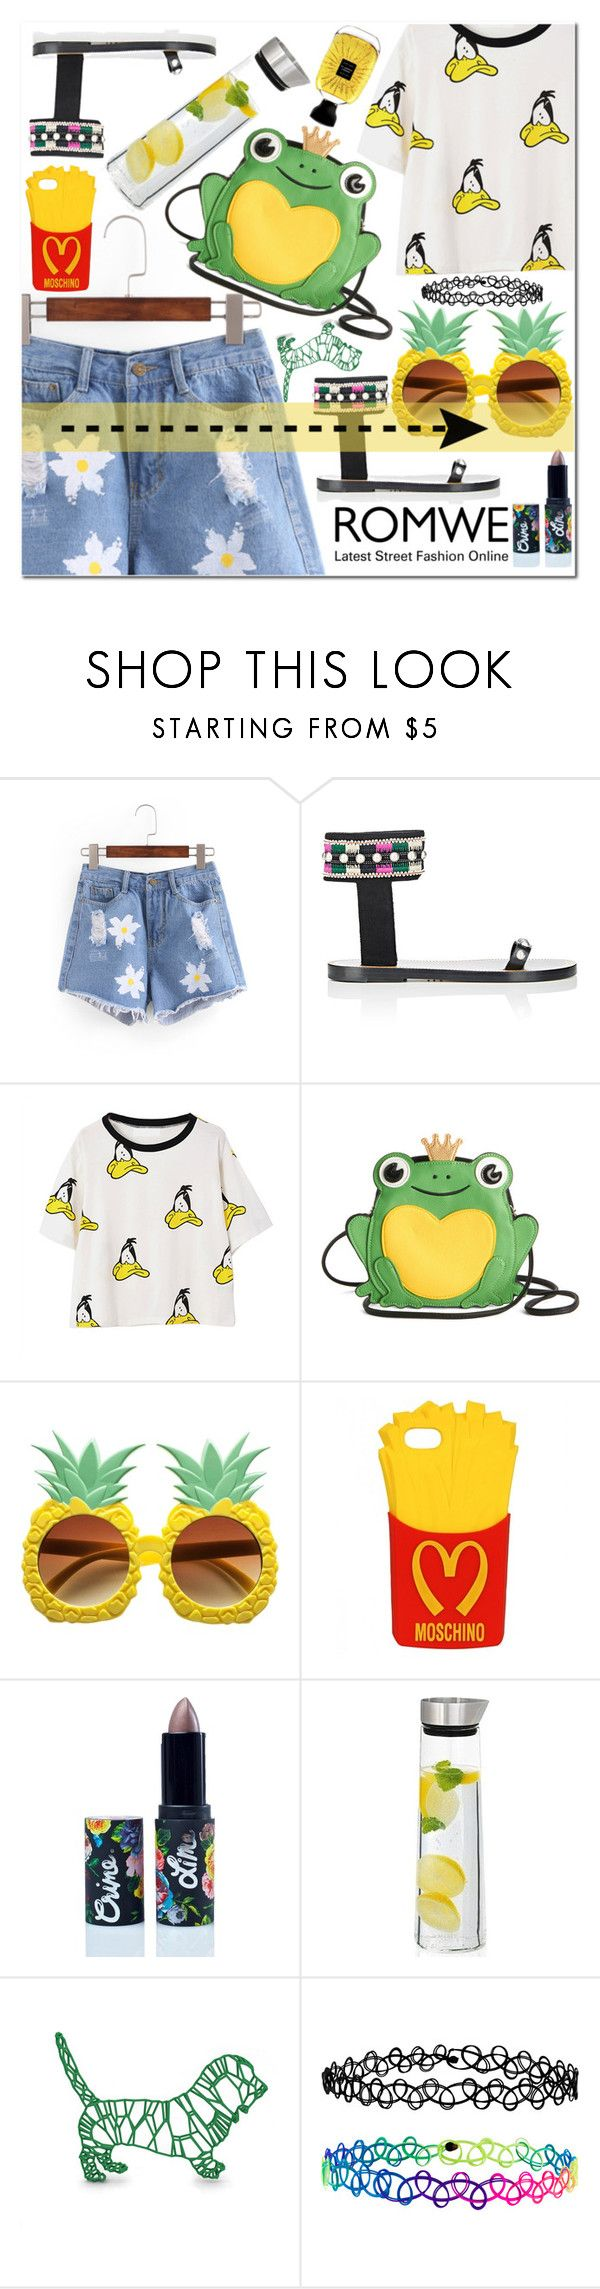 """""""Romwe Shorts ♥"""" by av-anul ❤ liked on Polyvore featuring Isabel Marant, Moschino, Lime Crime, blomus, WALL, Accessorize, Atelier Des Ors, romwe and avanul"""